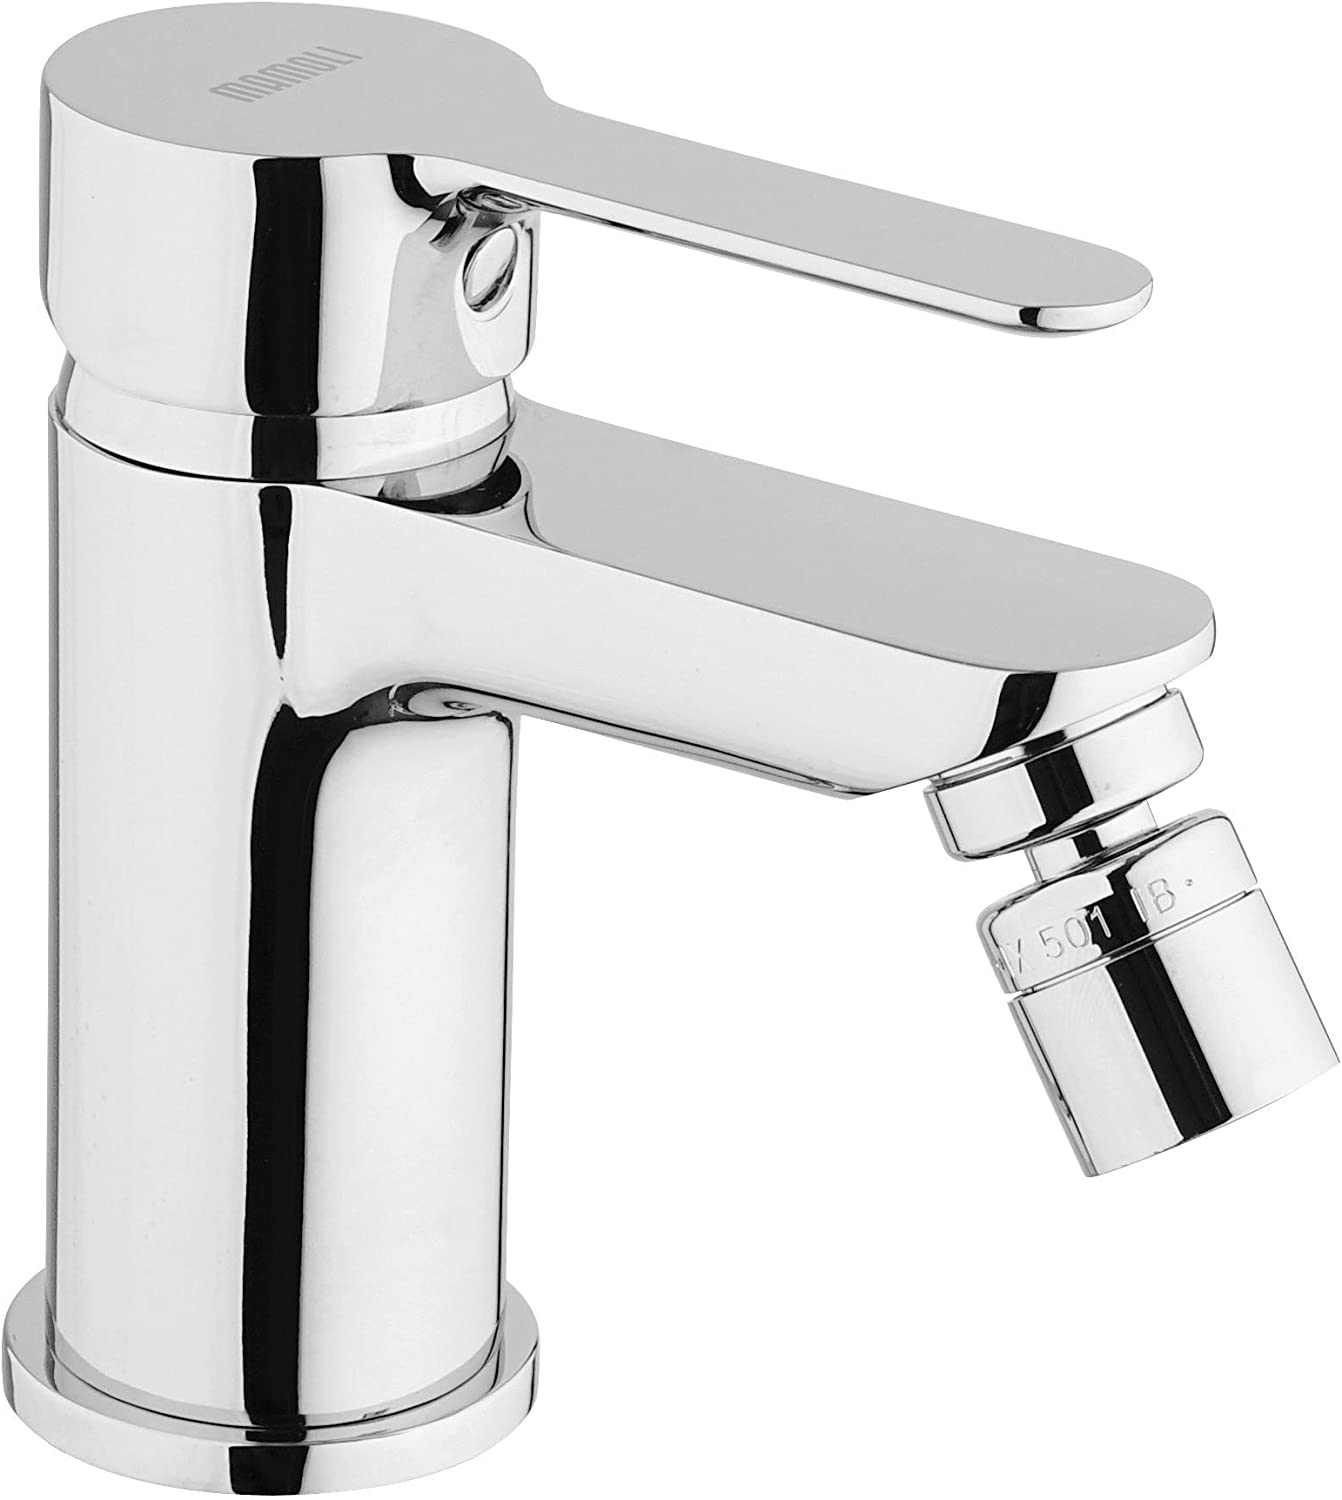 Mamoli 5061h130?N151?Bidet Single-Lever Mixer, Chrome